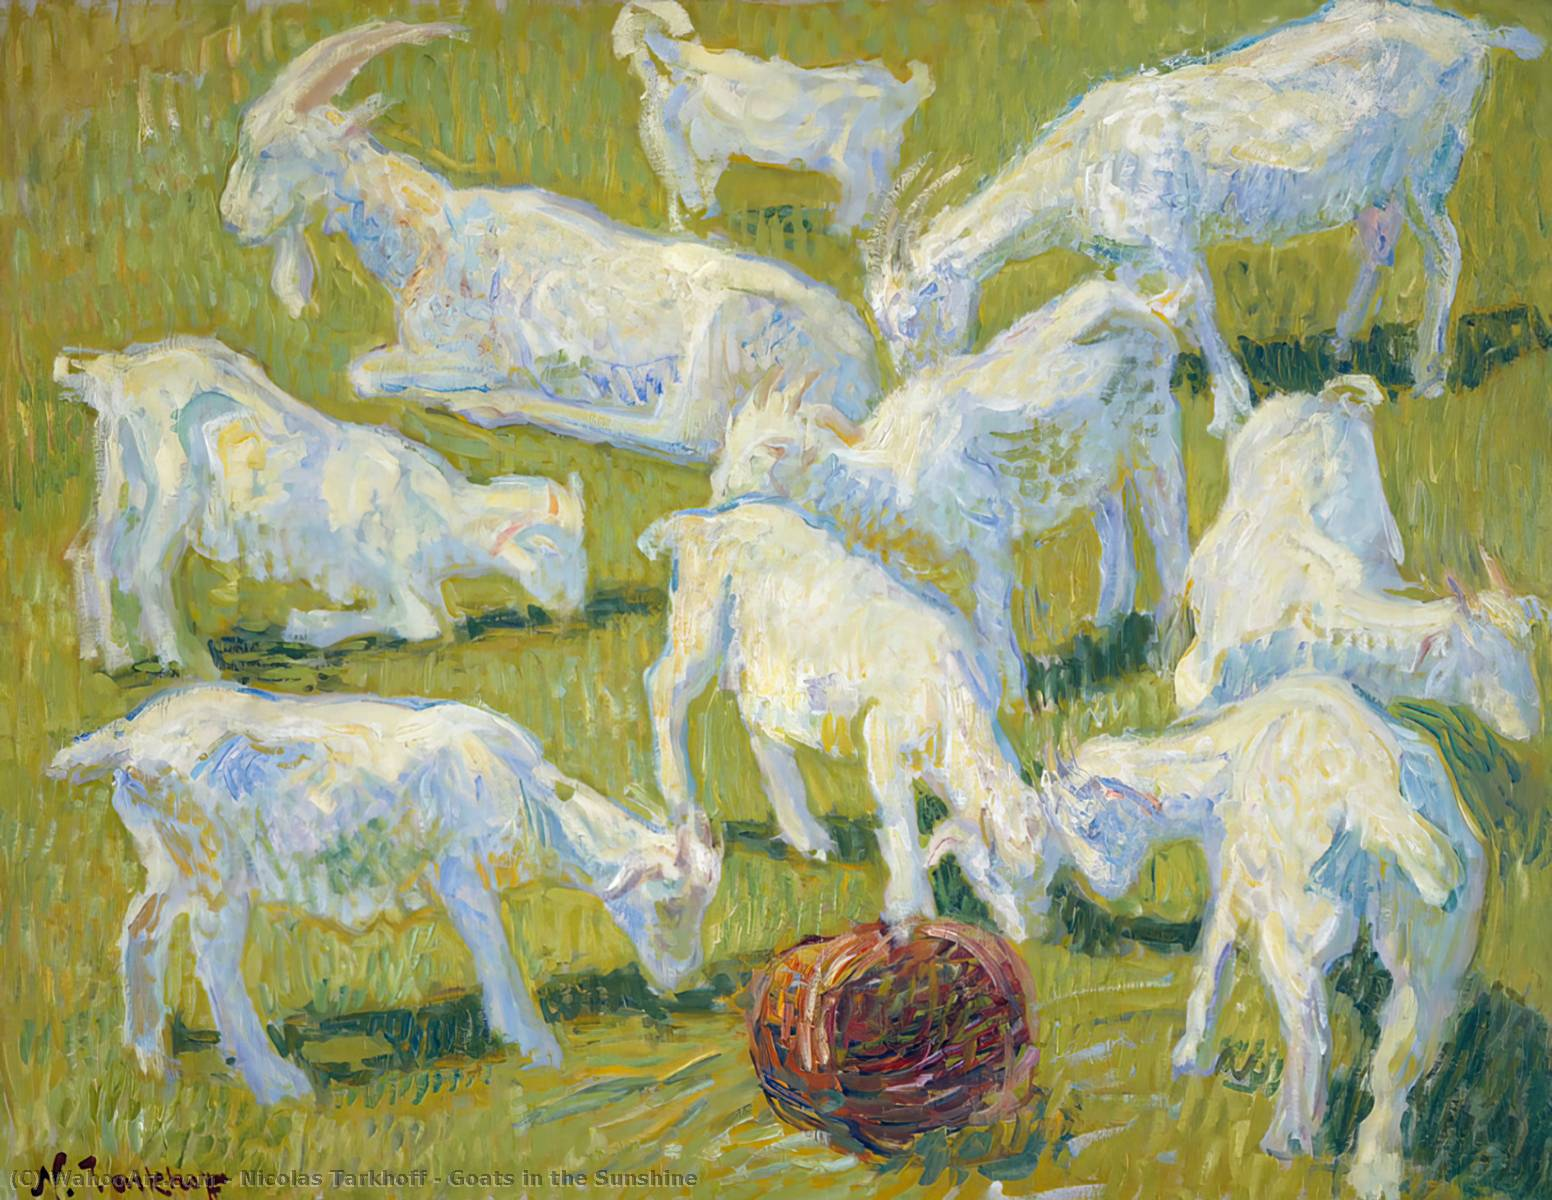 Goats in the Sunshine, 1904 by Nicolas Tarkhoff (1871-1930) | Museum Quality Reproductions | WahooArt.com